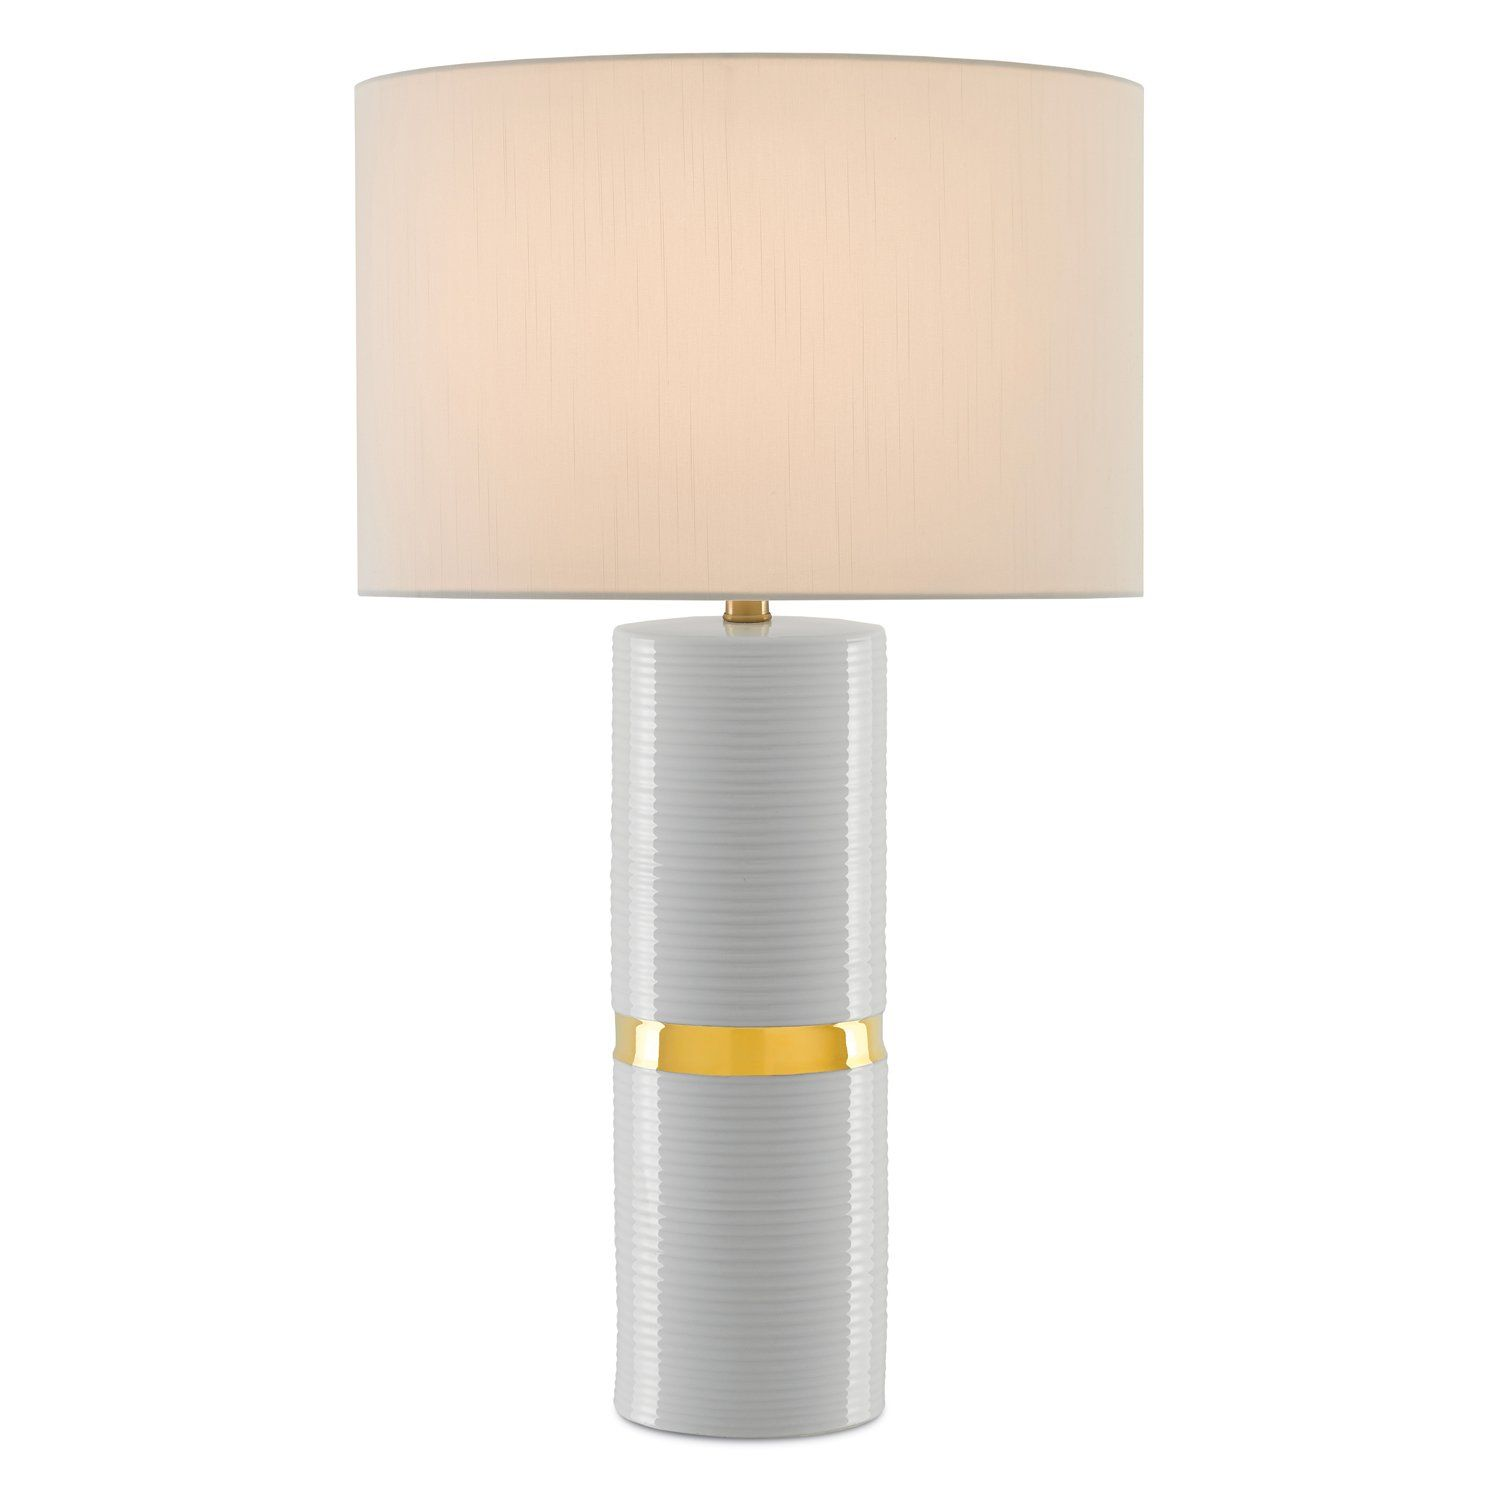 Currey Co Enzo White Table Lamp Paynesgray Table Lamp Lamp White Table Lamp